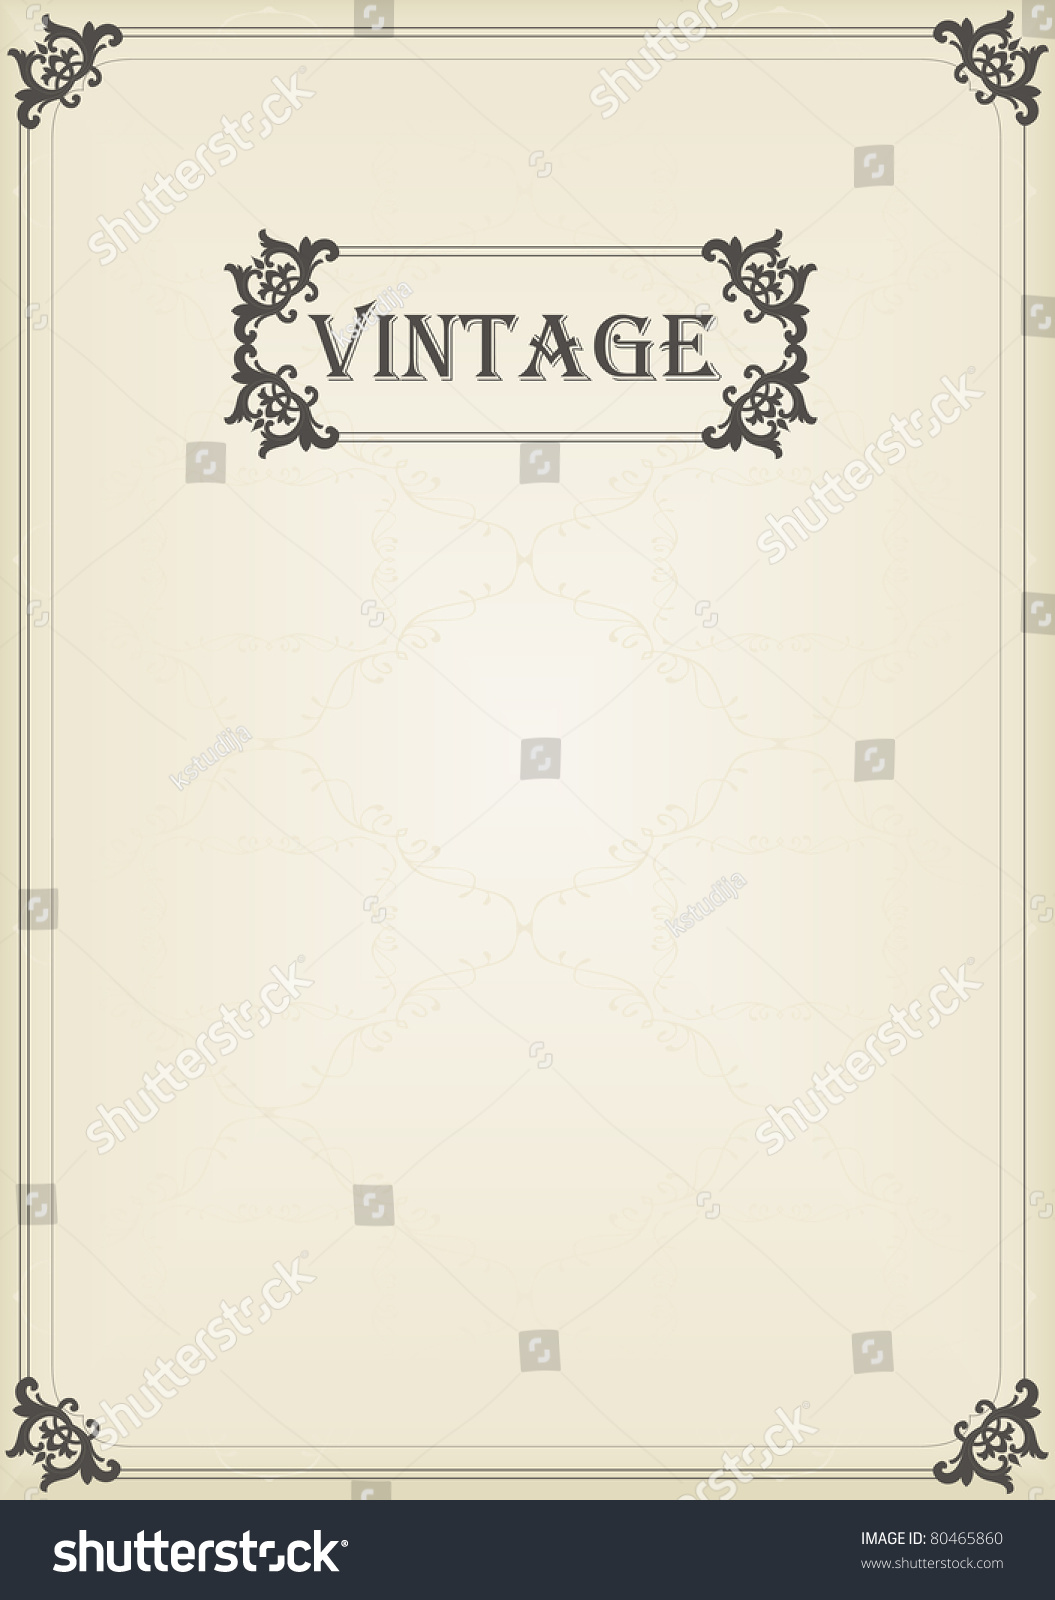 Old Book Cover Vector Free : Vintage vector decorative frame for book cover or card